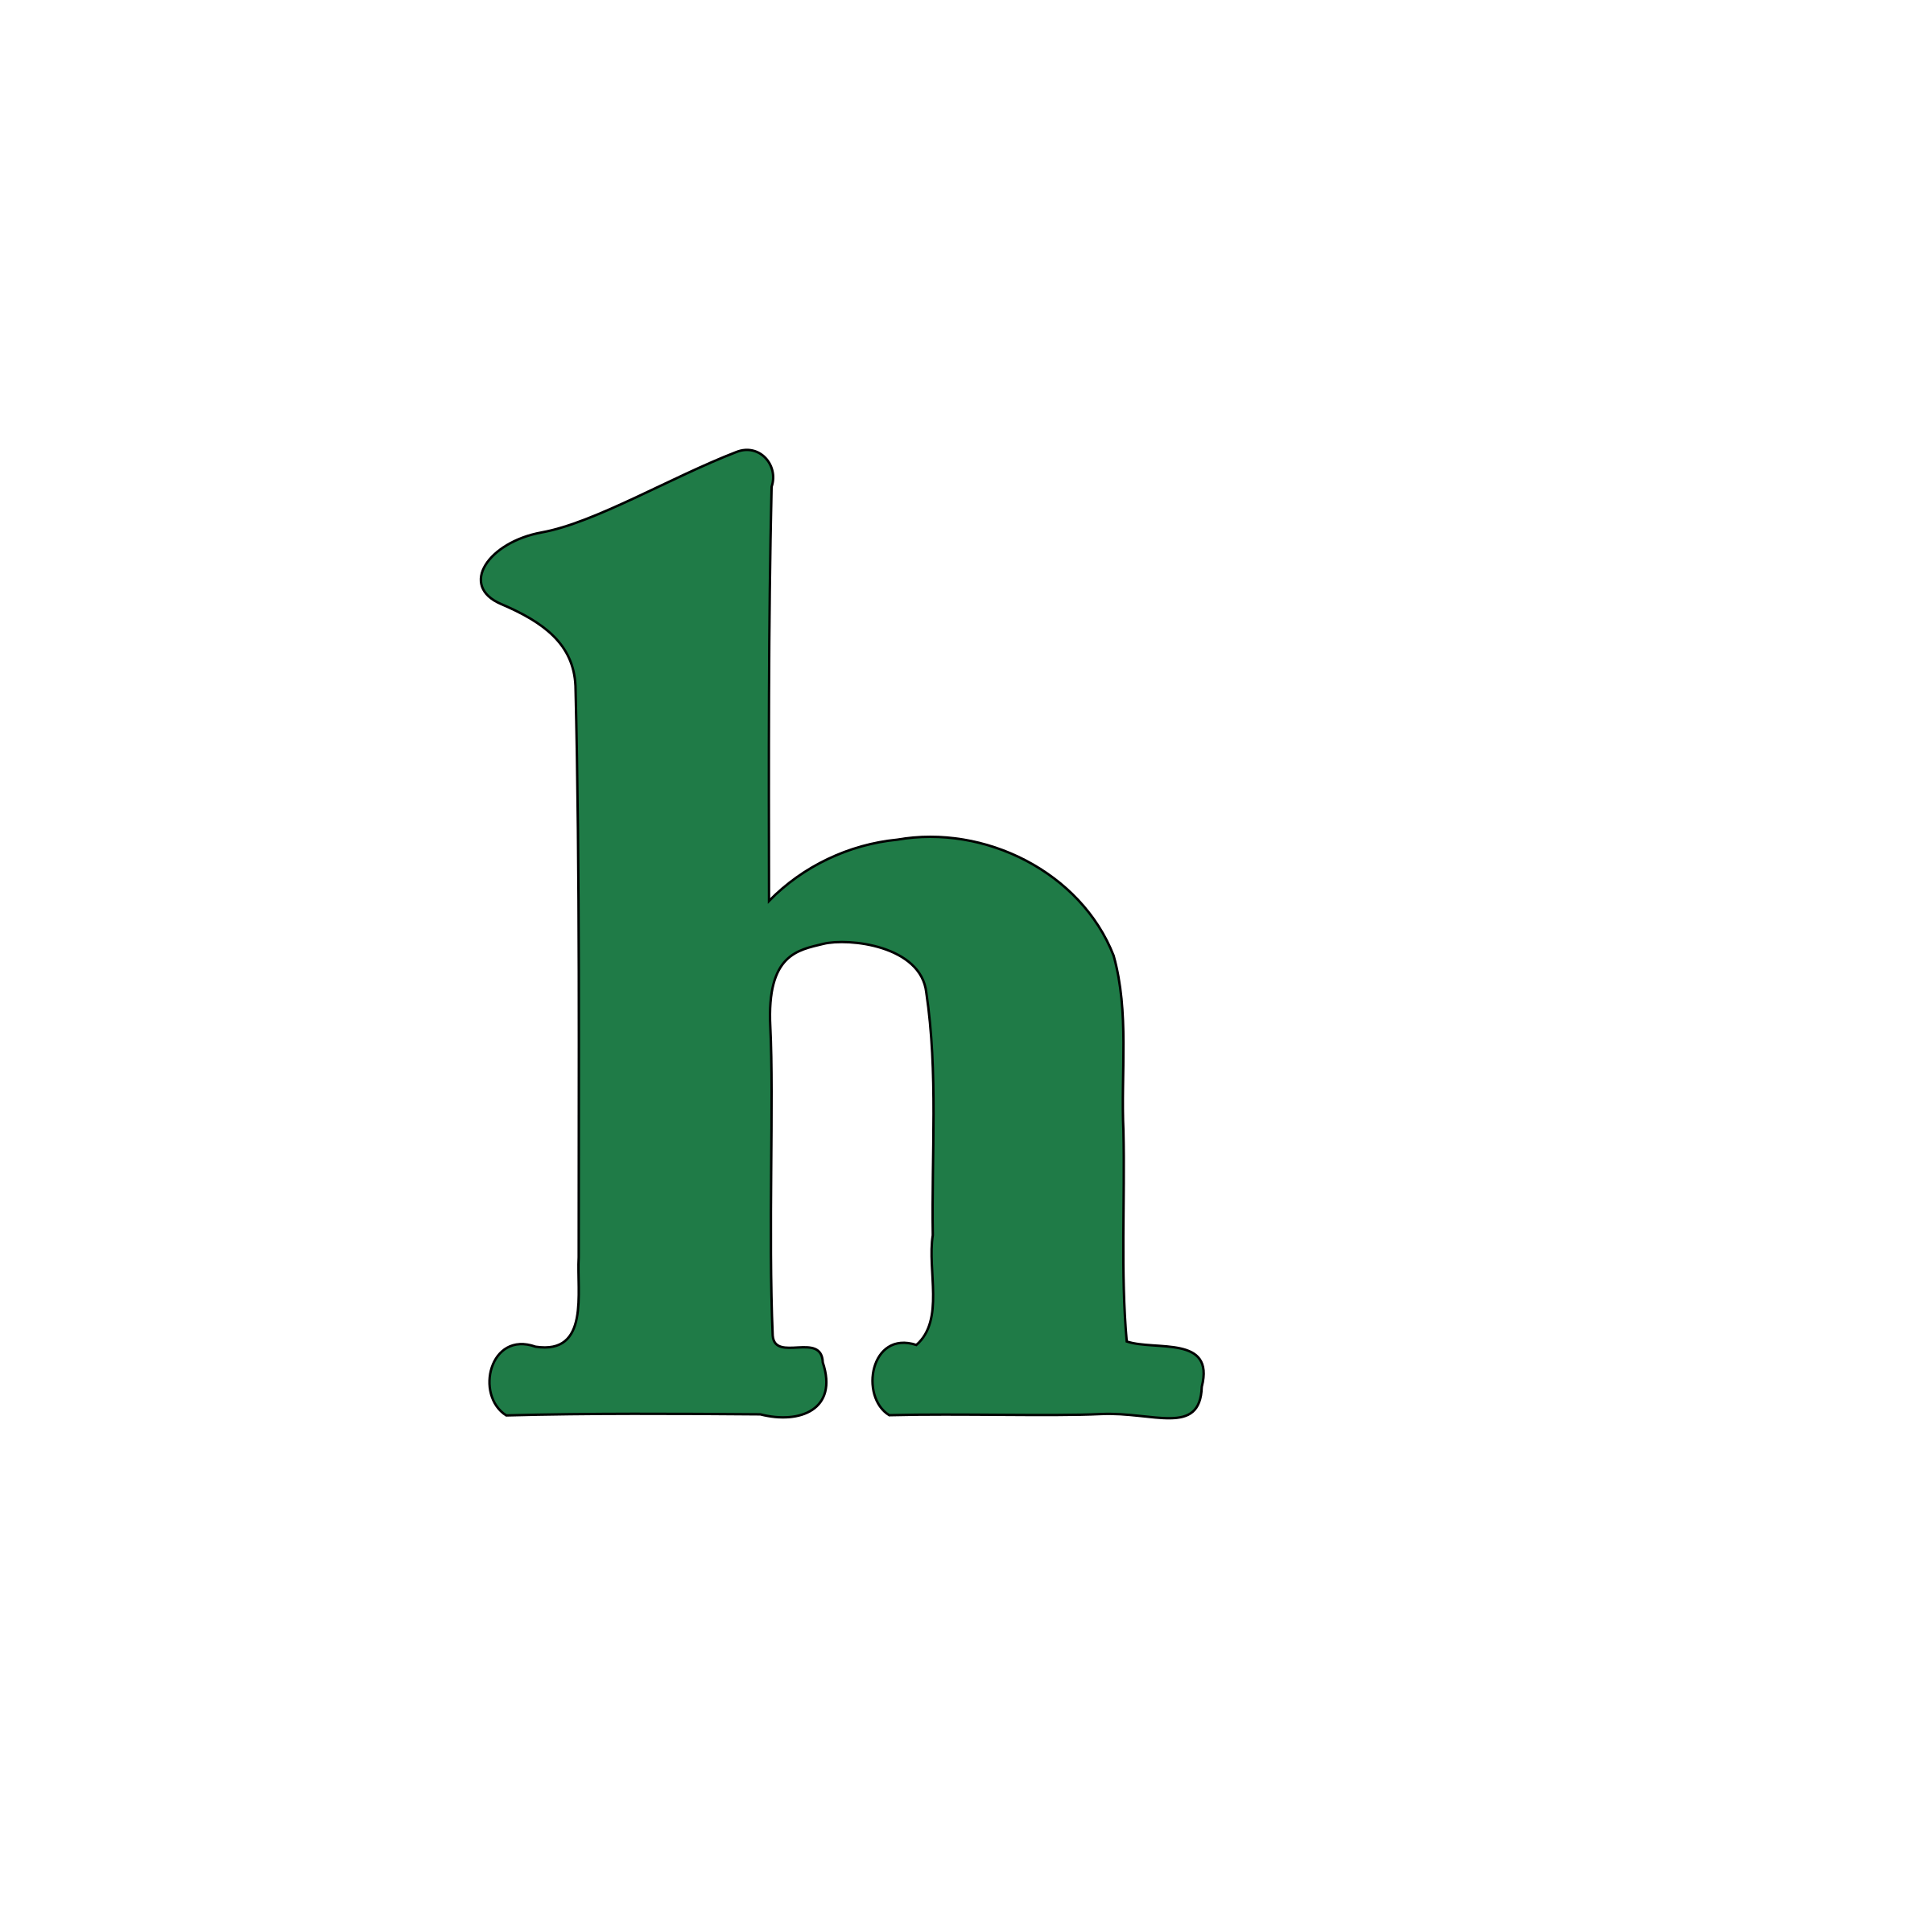 Lowercase a clipart royalty free stock Lowercase H Clipart   Letters Format royalty free stock